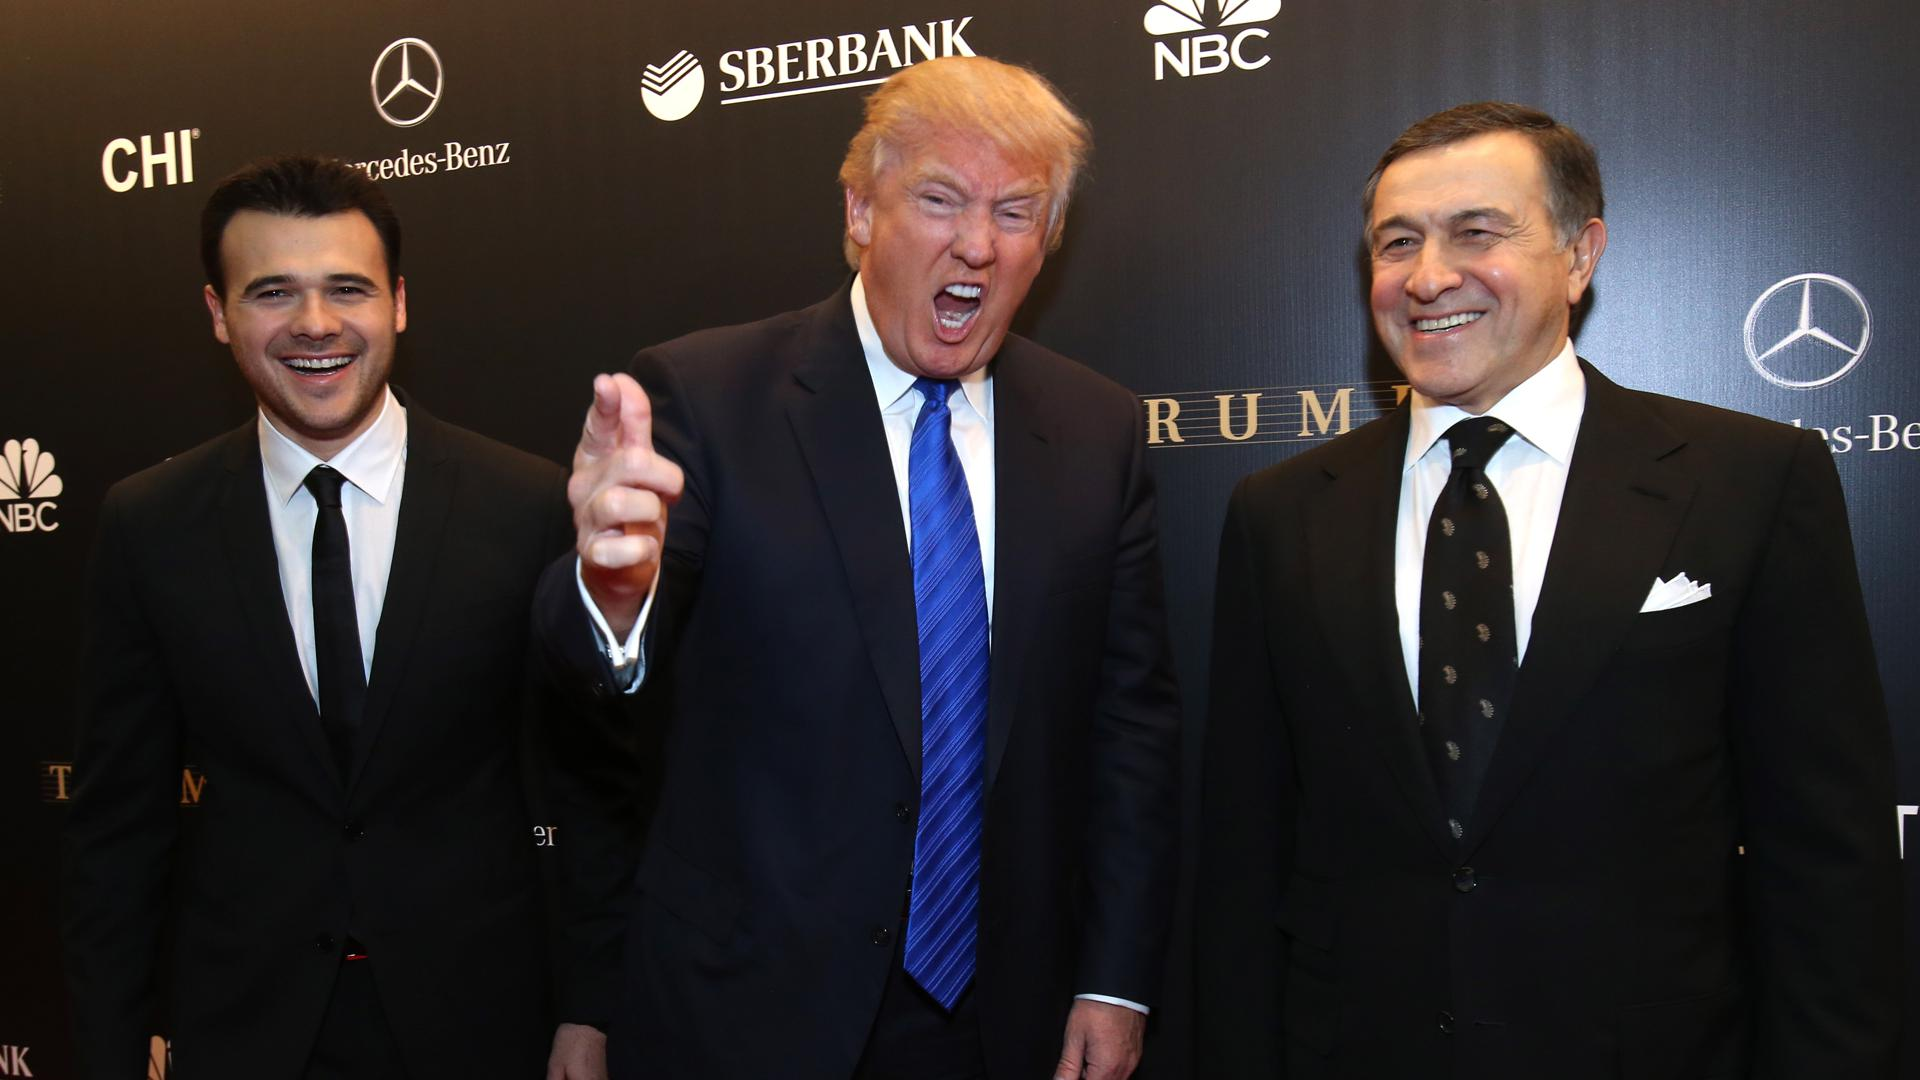 Crocus Group president Aras Agalarov (R), vice president Emin Agalarov (L), and American business magnate Donald Trump (C) arrive for the Miss Universe 2013 beauty pageant final at Crocus City Hall.